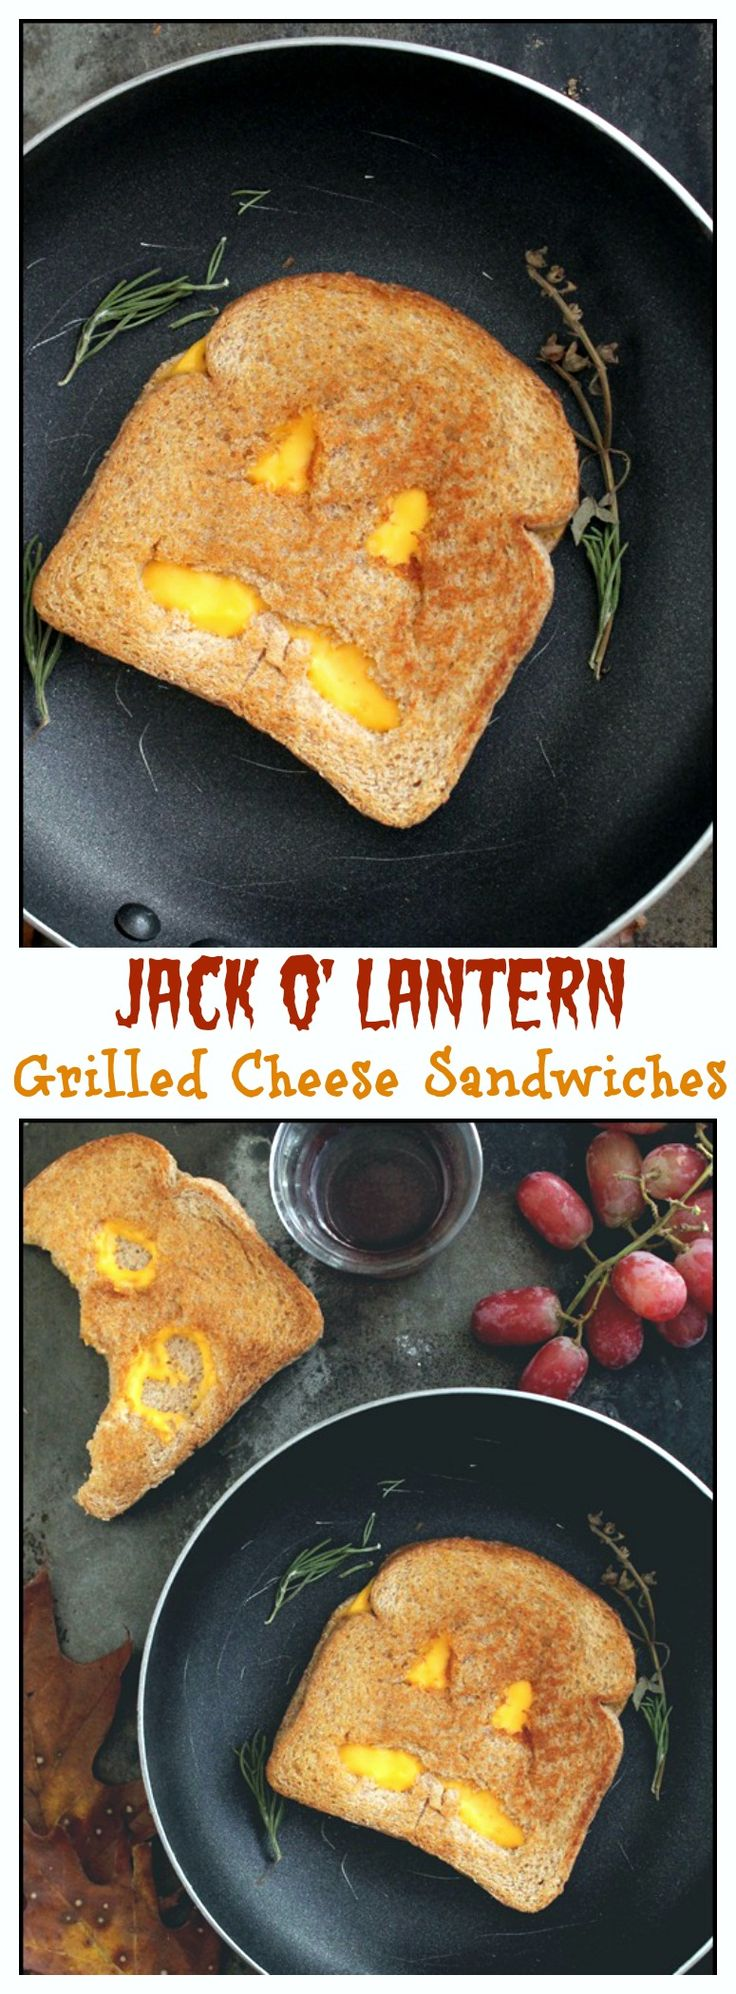 jack o lantern grilled cheese sandwiches ideas for halloweenkid halloweenhalloween recipehalloween - Halloween Kid Foods To Make